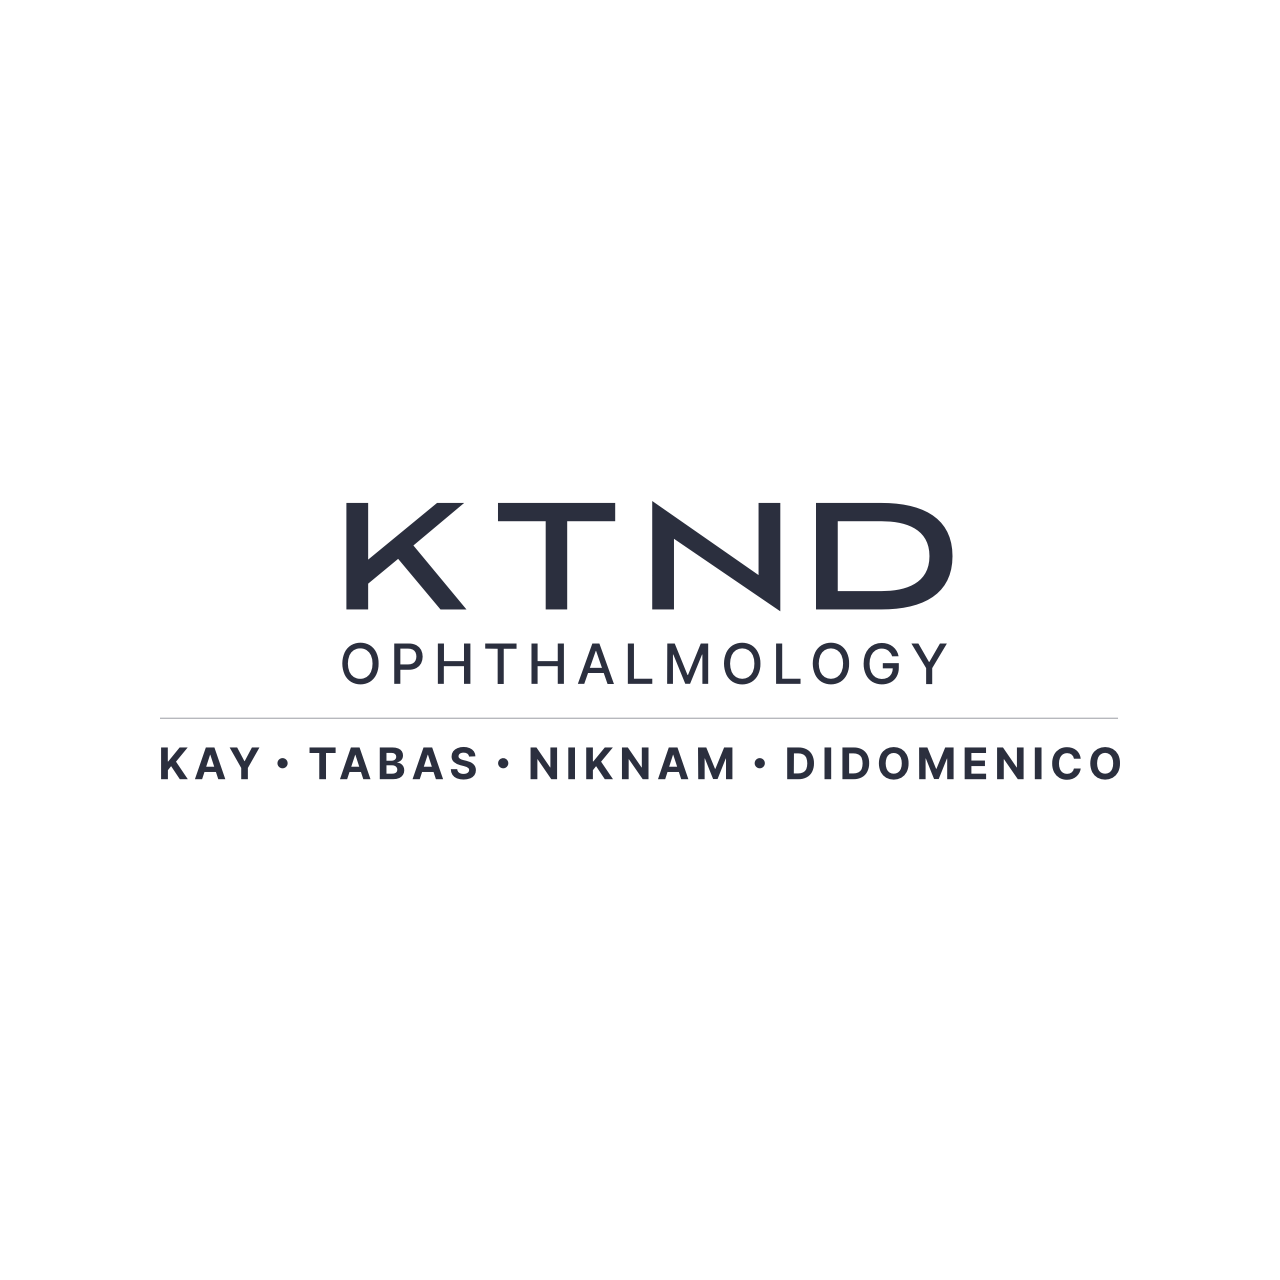 KTND Ophthalmology